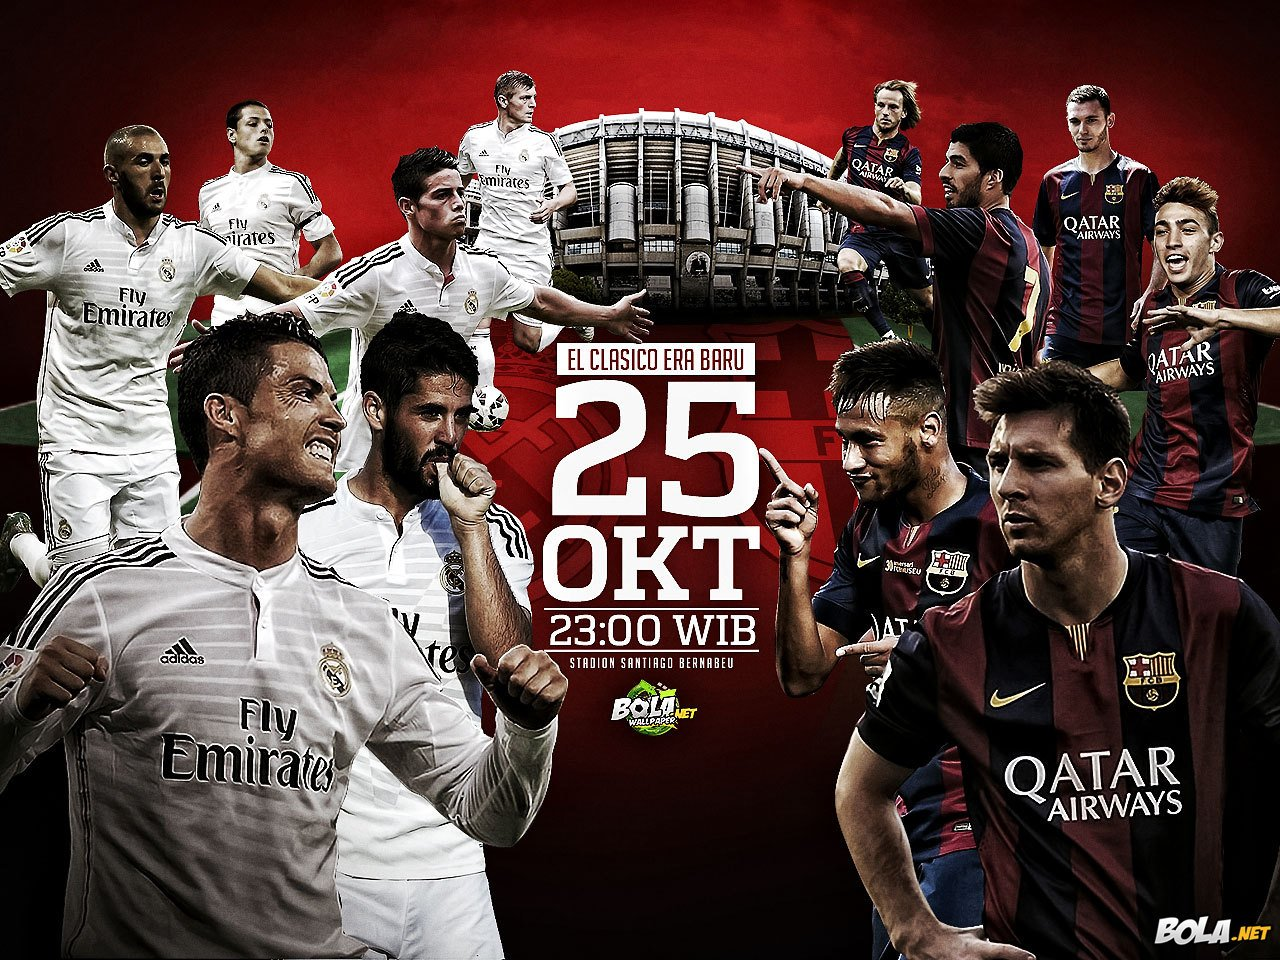 Bolanet Download Wallpaper   Real Madrid vs Barcelona 1280x960